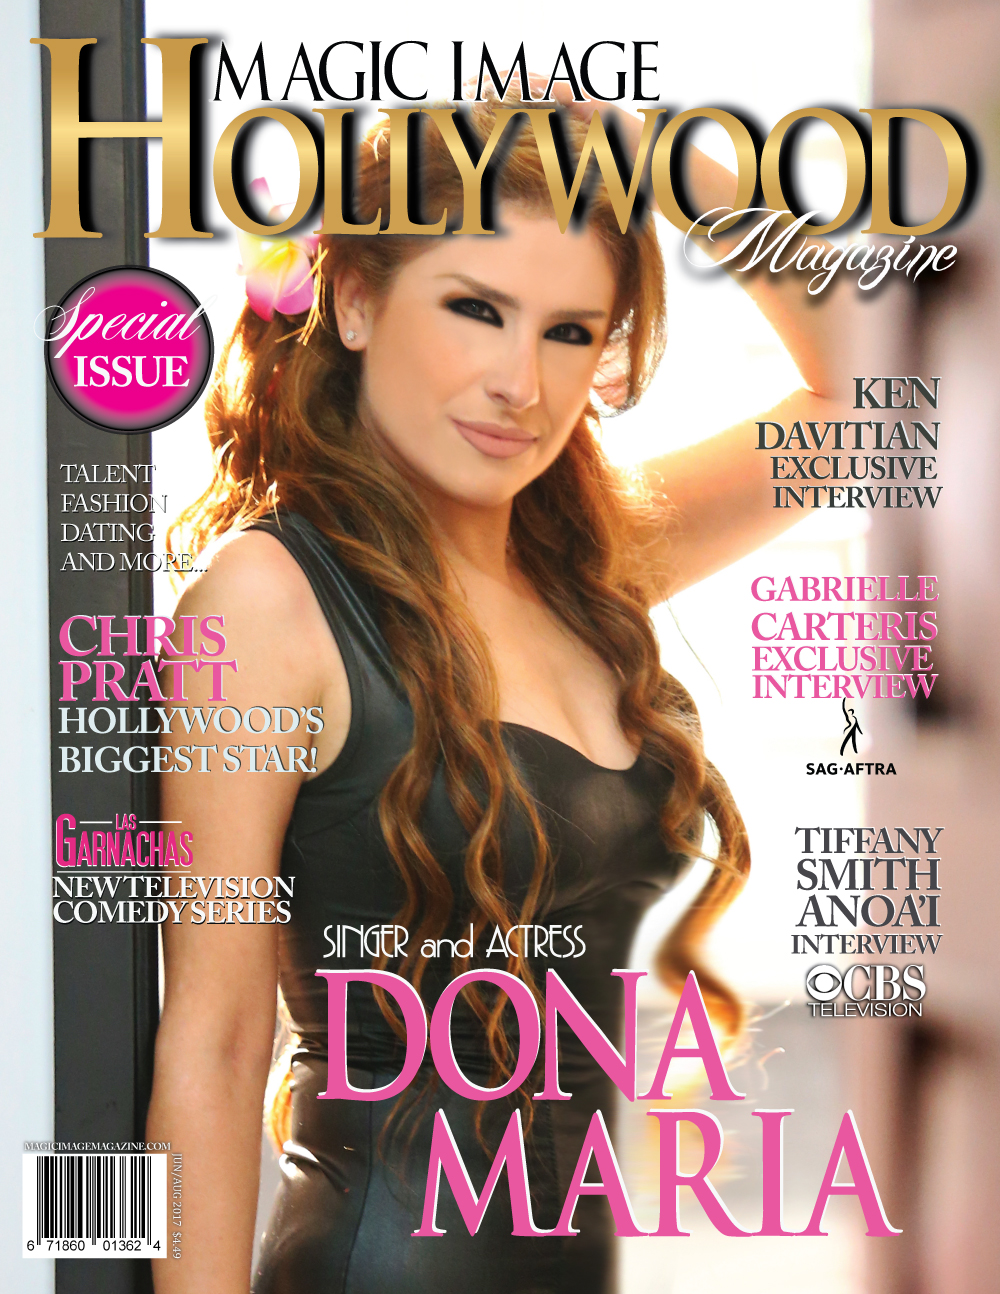 Dona Maria on Hollywood cover magazine